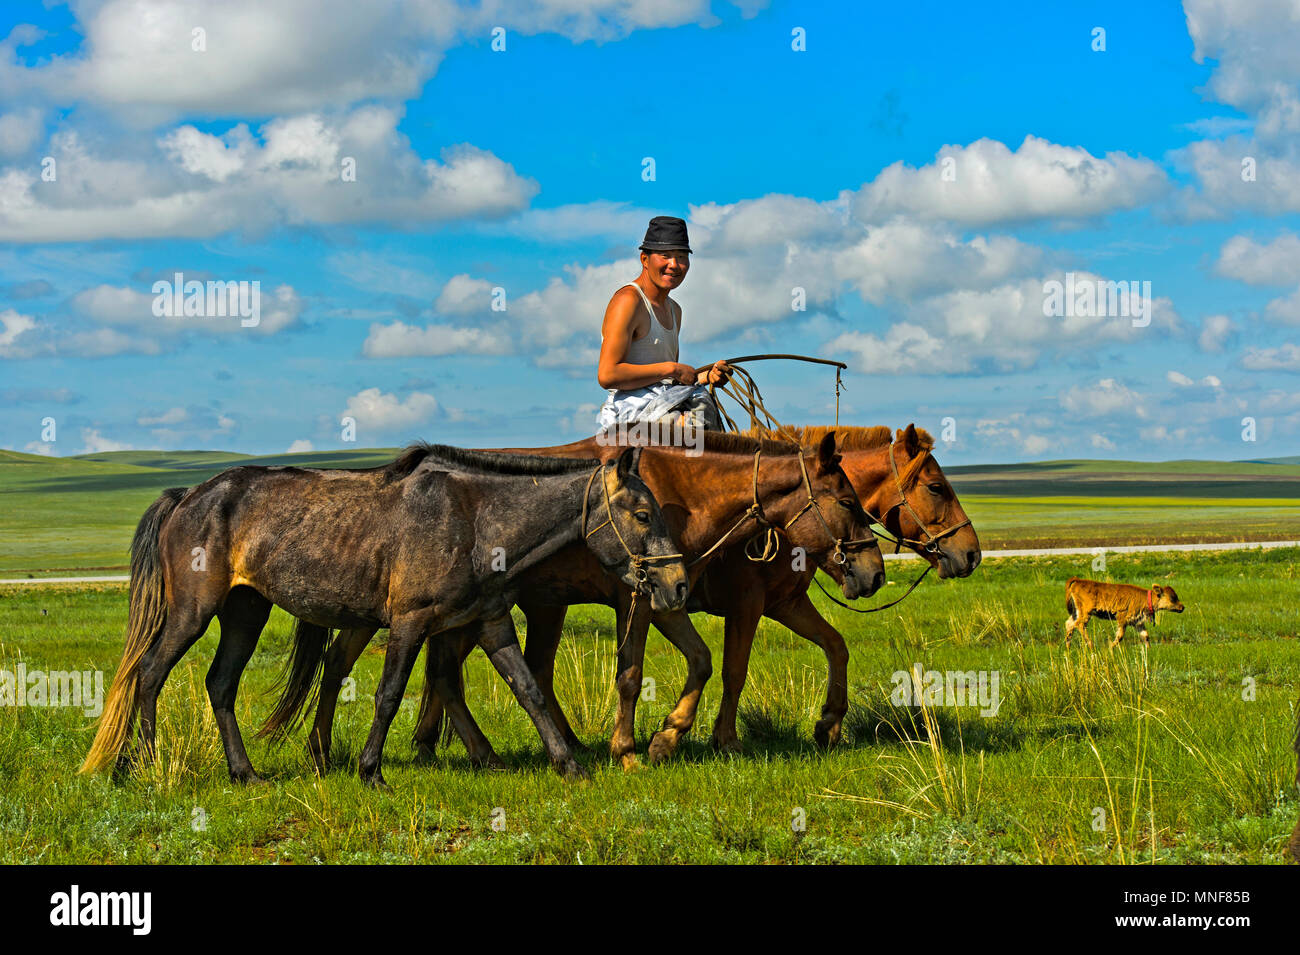 Shepherd rides with horses in the steppe, Mongolia - Stock Image